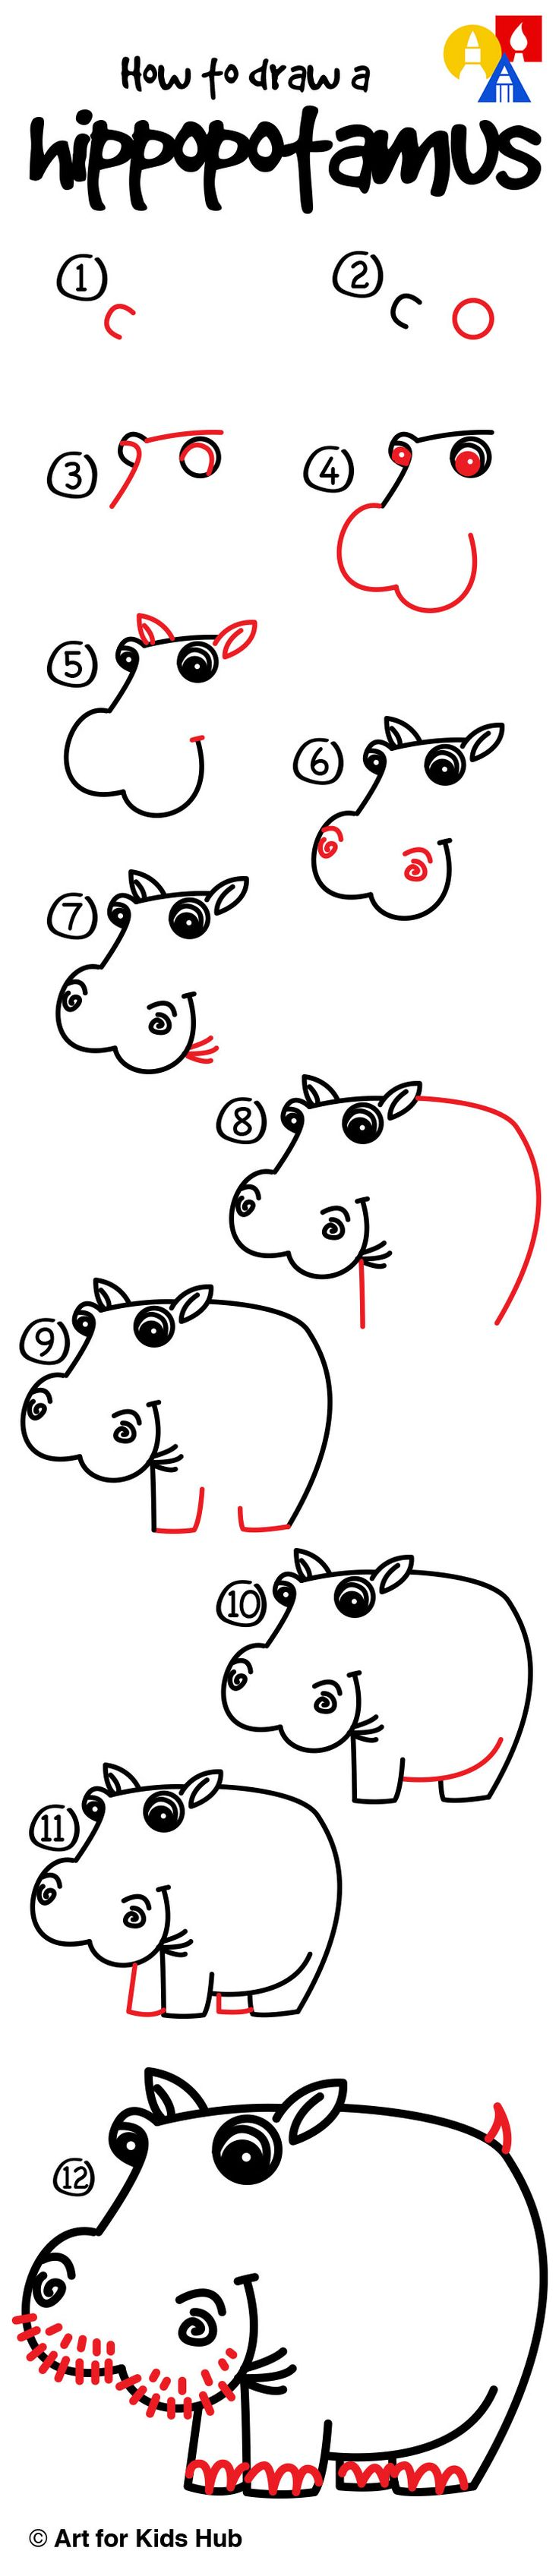 How To Draw A Hippo  Art For Kids Hub